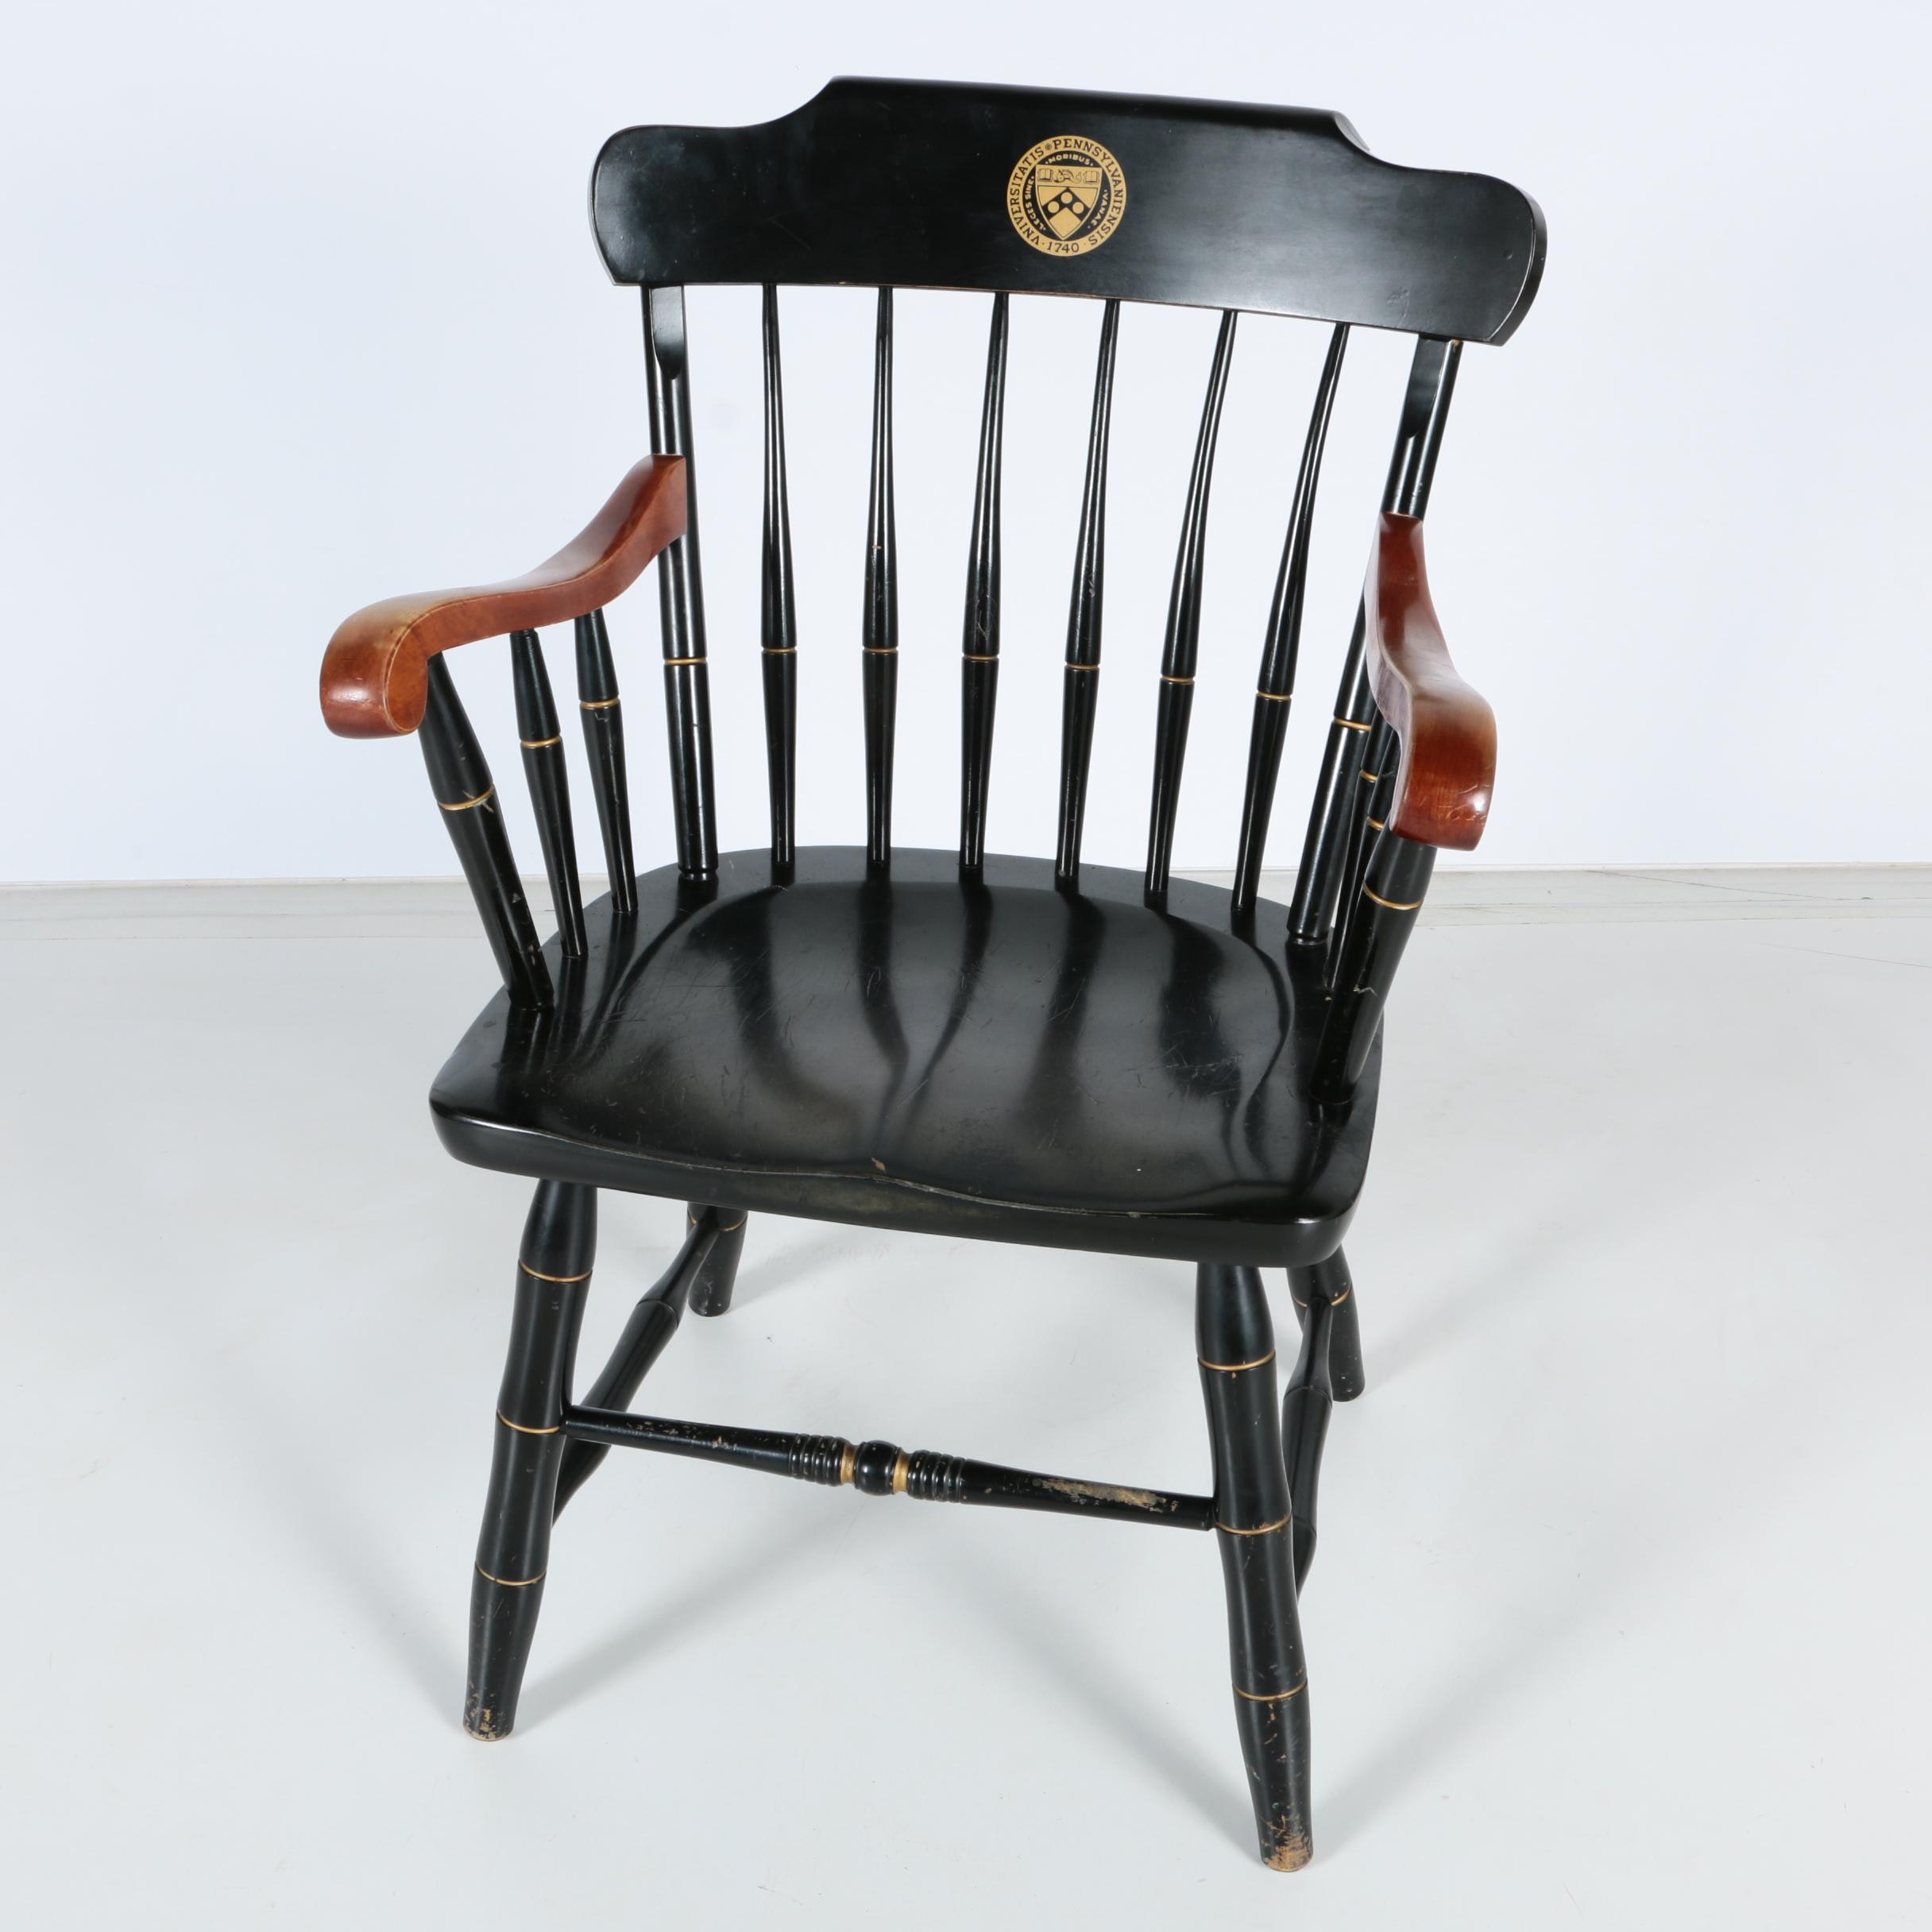 Windsor Style Armchair with University of Pennsylvania Seal